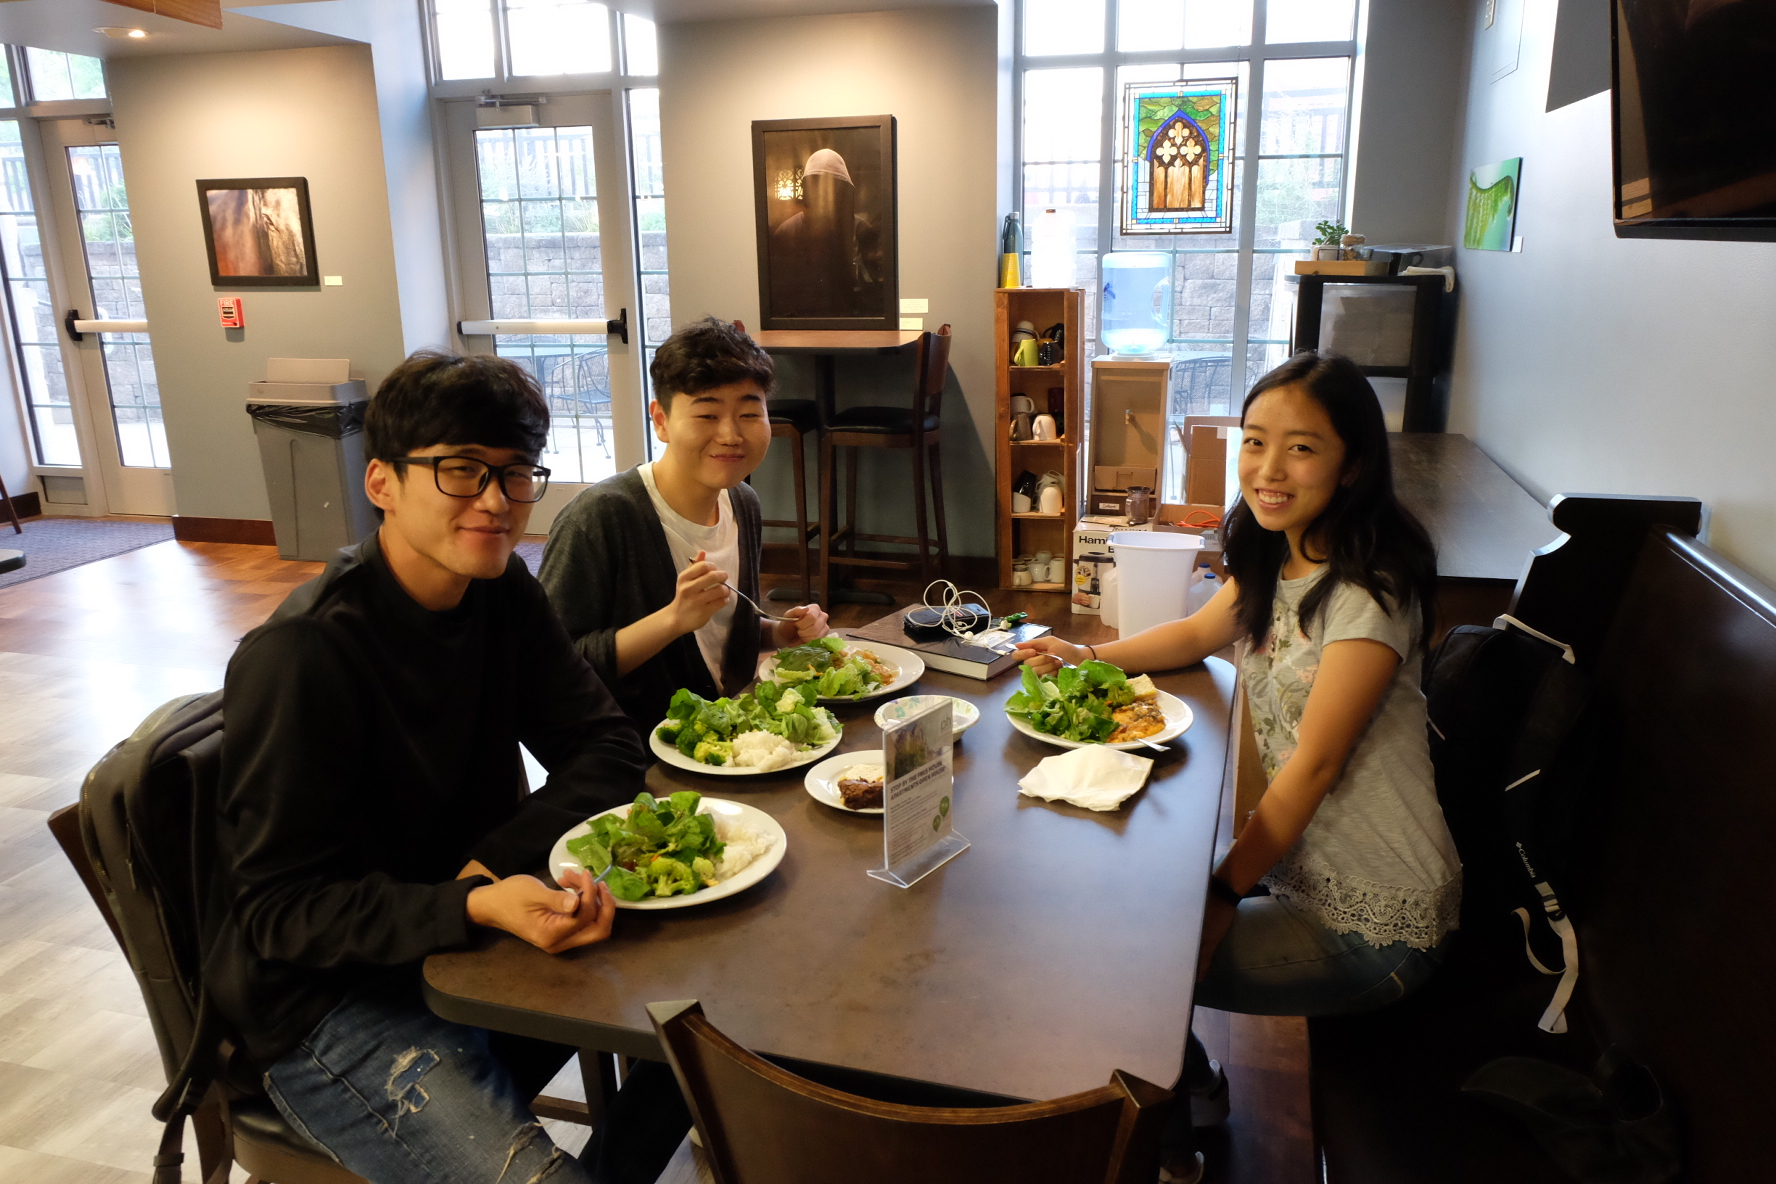 Three People Eating At Table